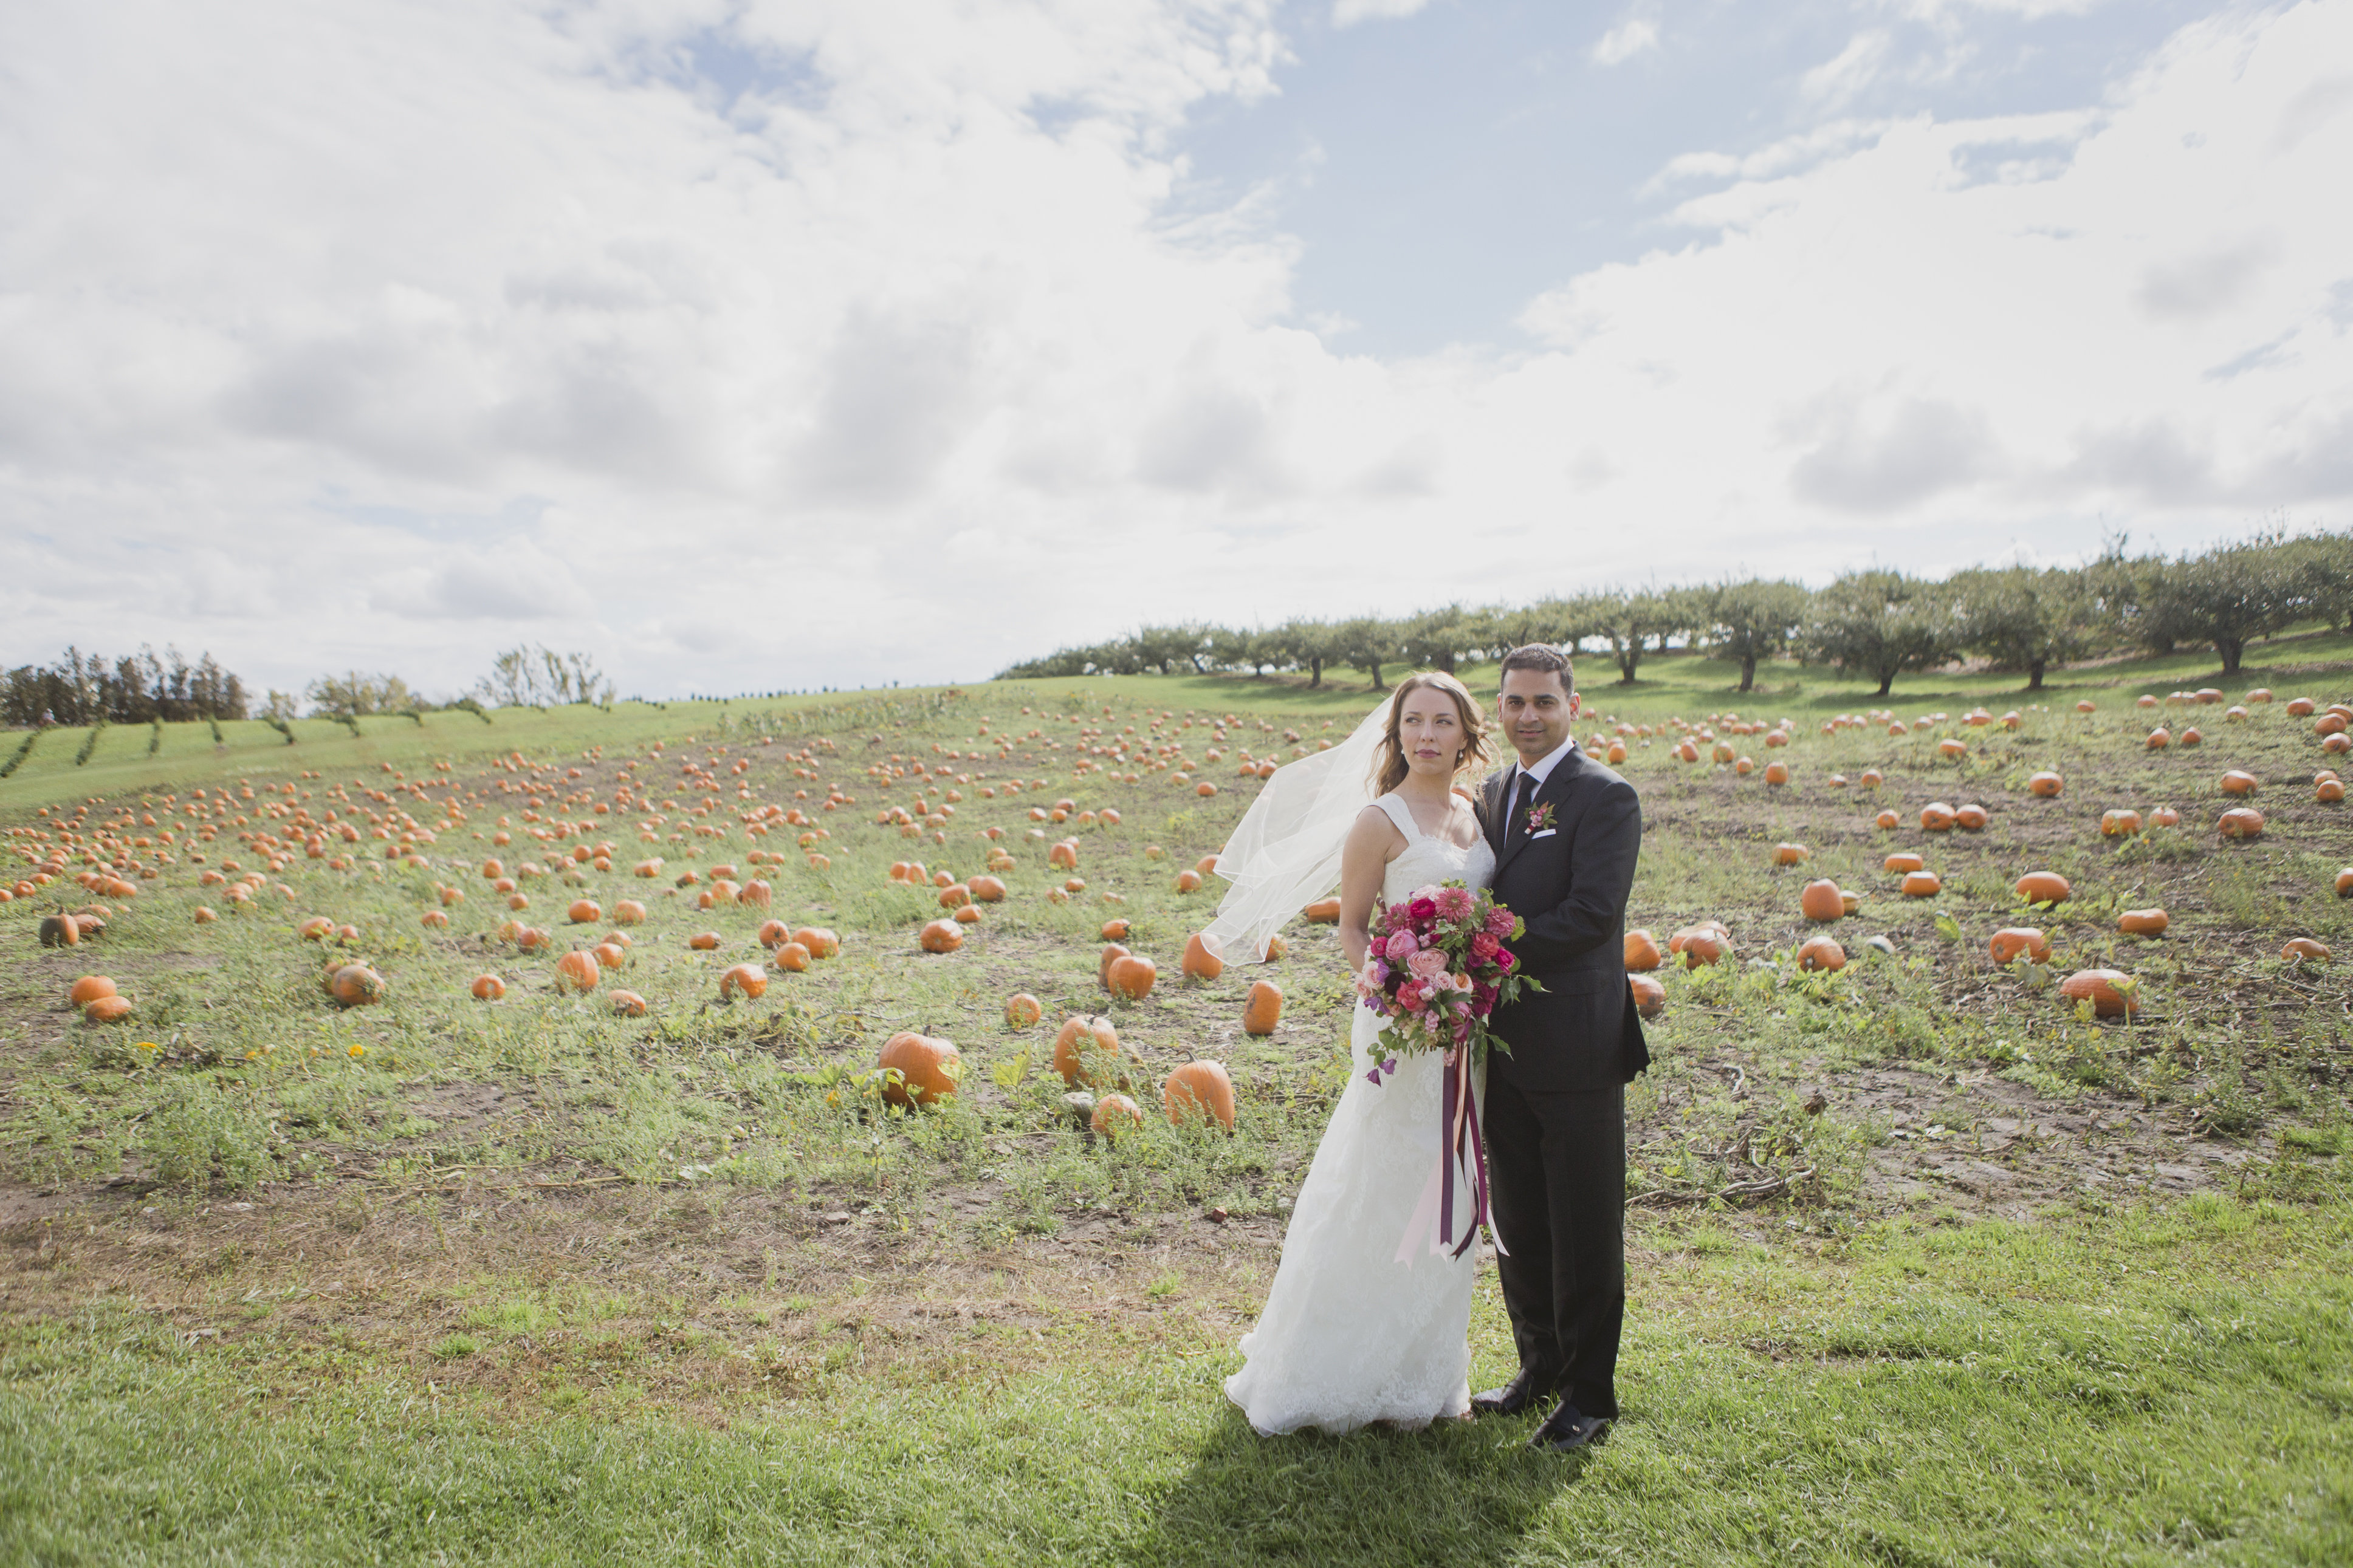 Romantic fall wedding photos in a pumpkin patch. See more at Rebecca Chan Weddings and Events http://www.rebeccachan.ca